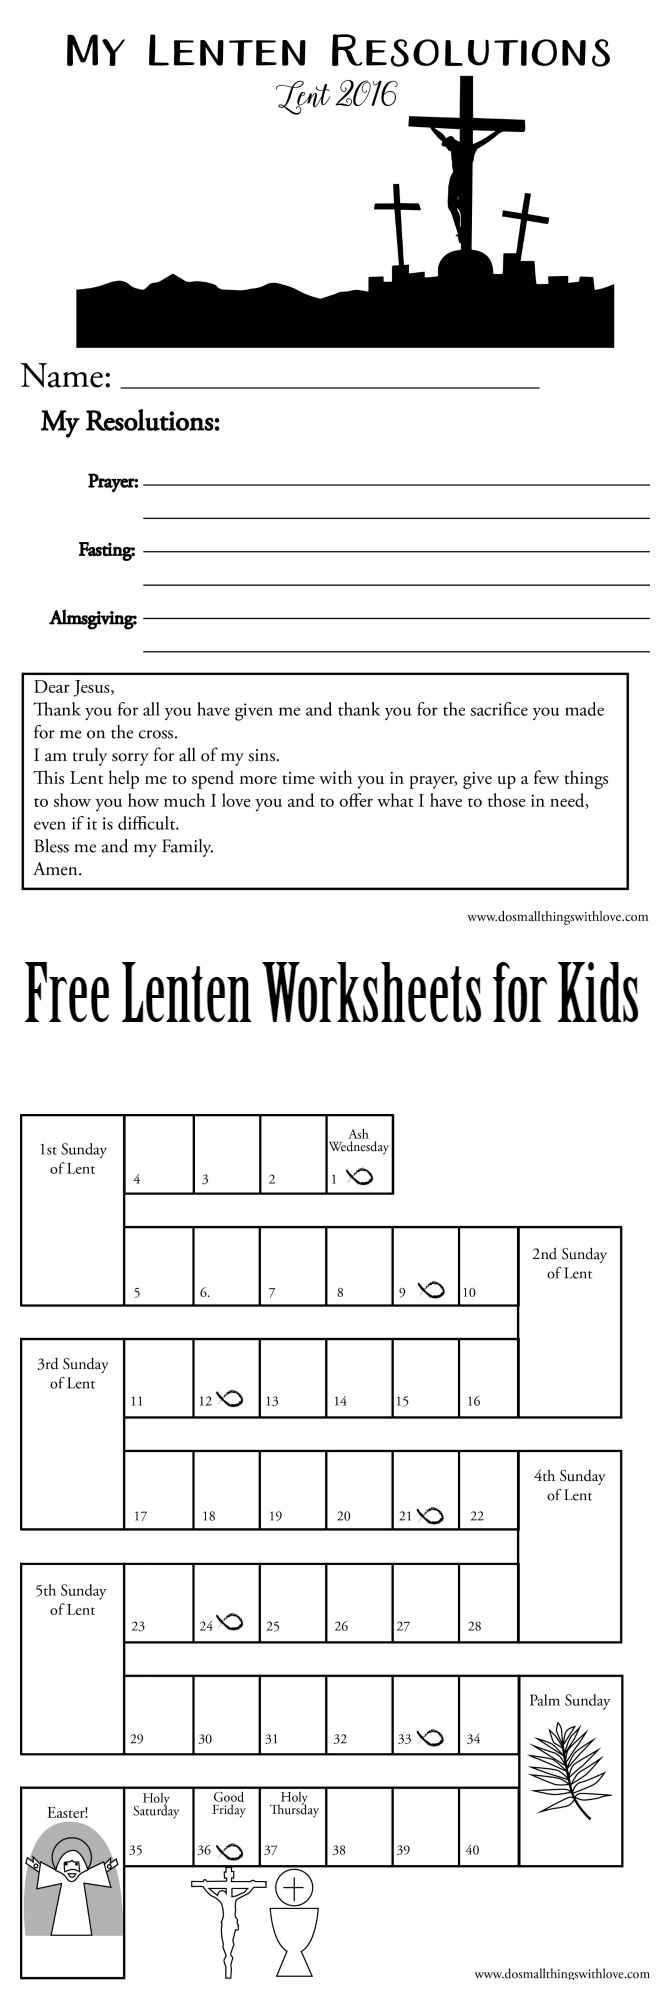 Lenten Worksheets For Kids {Free Printable} – Do Small Things with ...